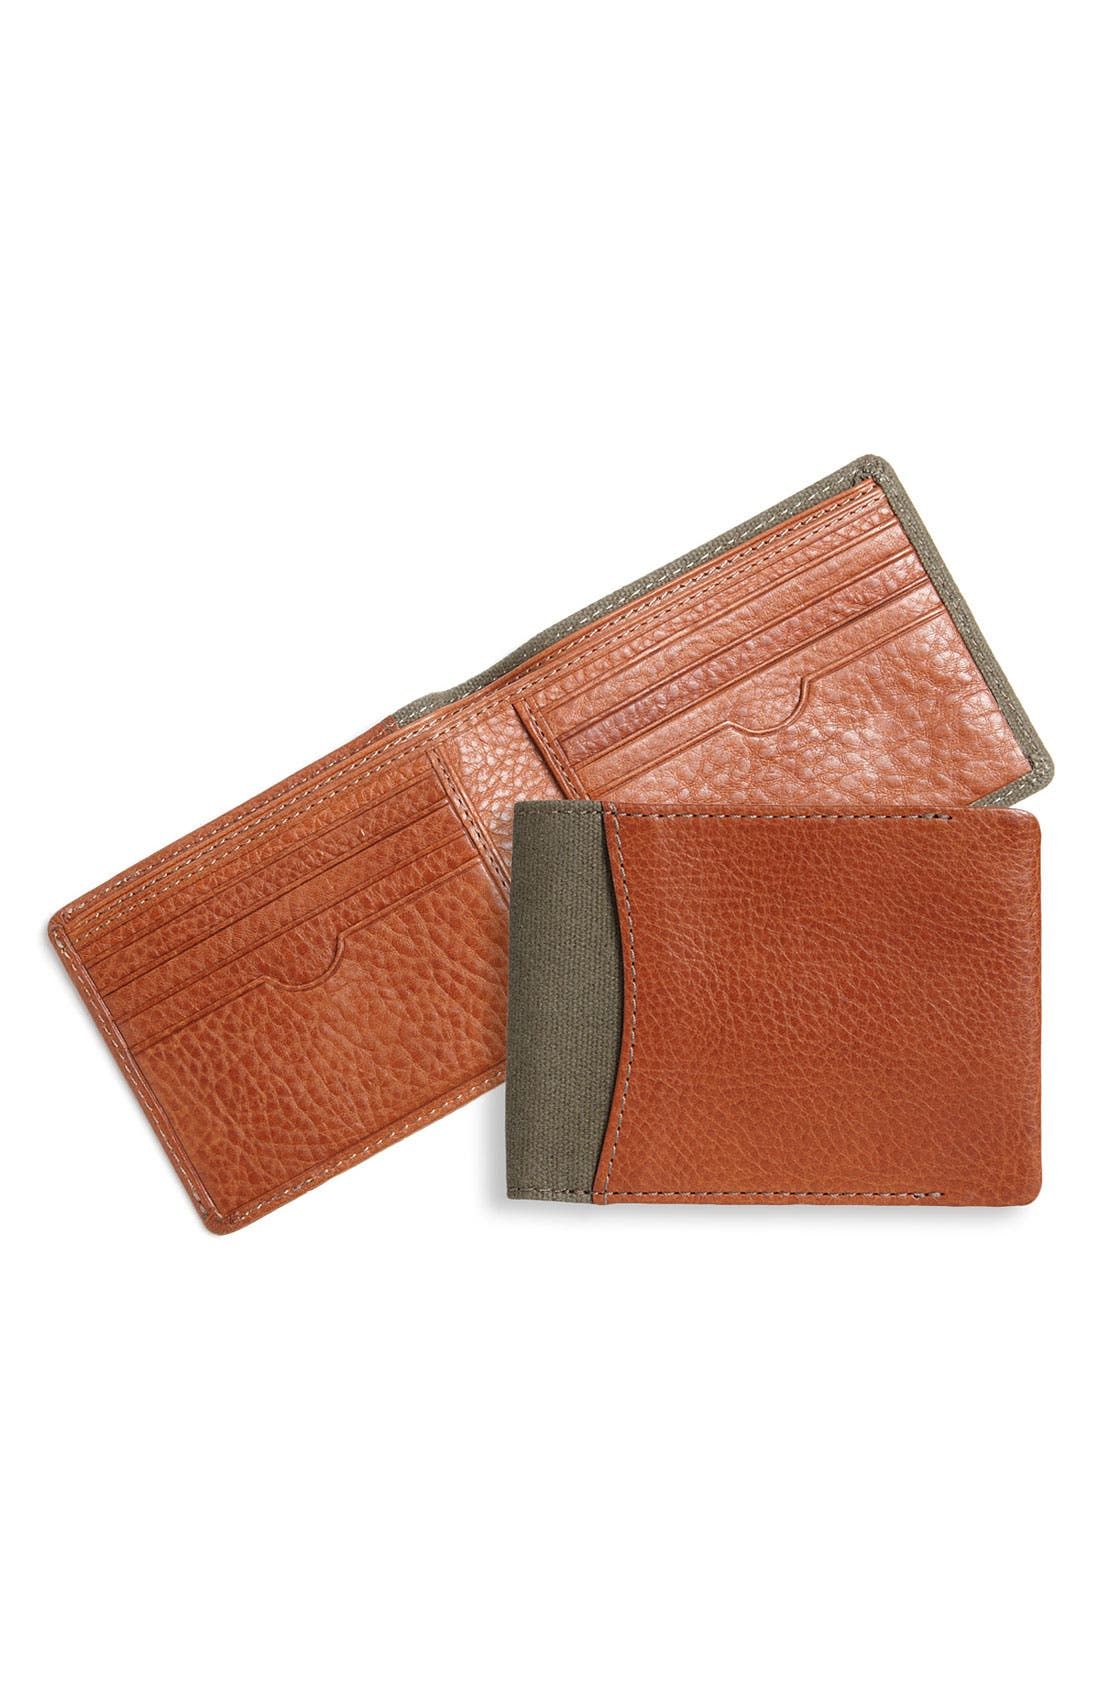 Main Image - Bosca Deluxe Executive Wallet